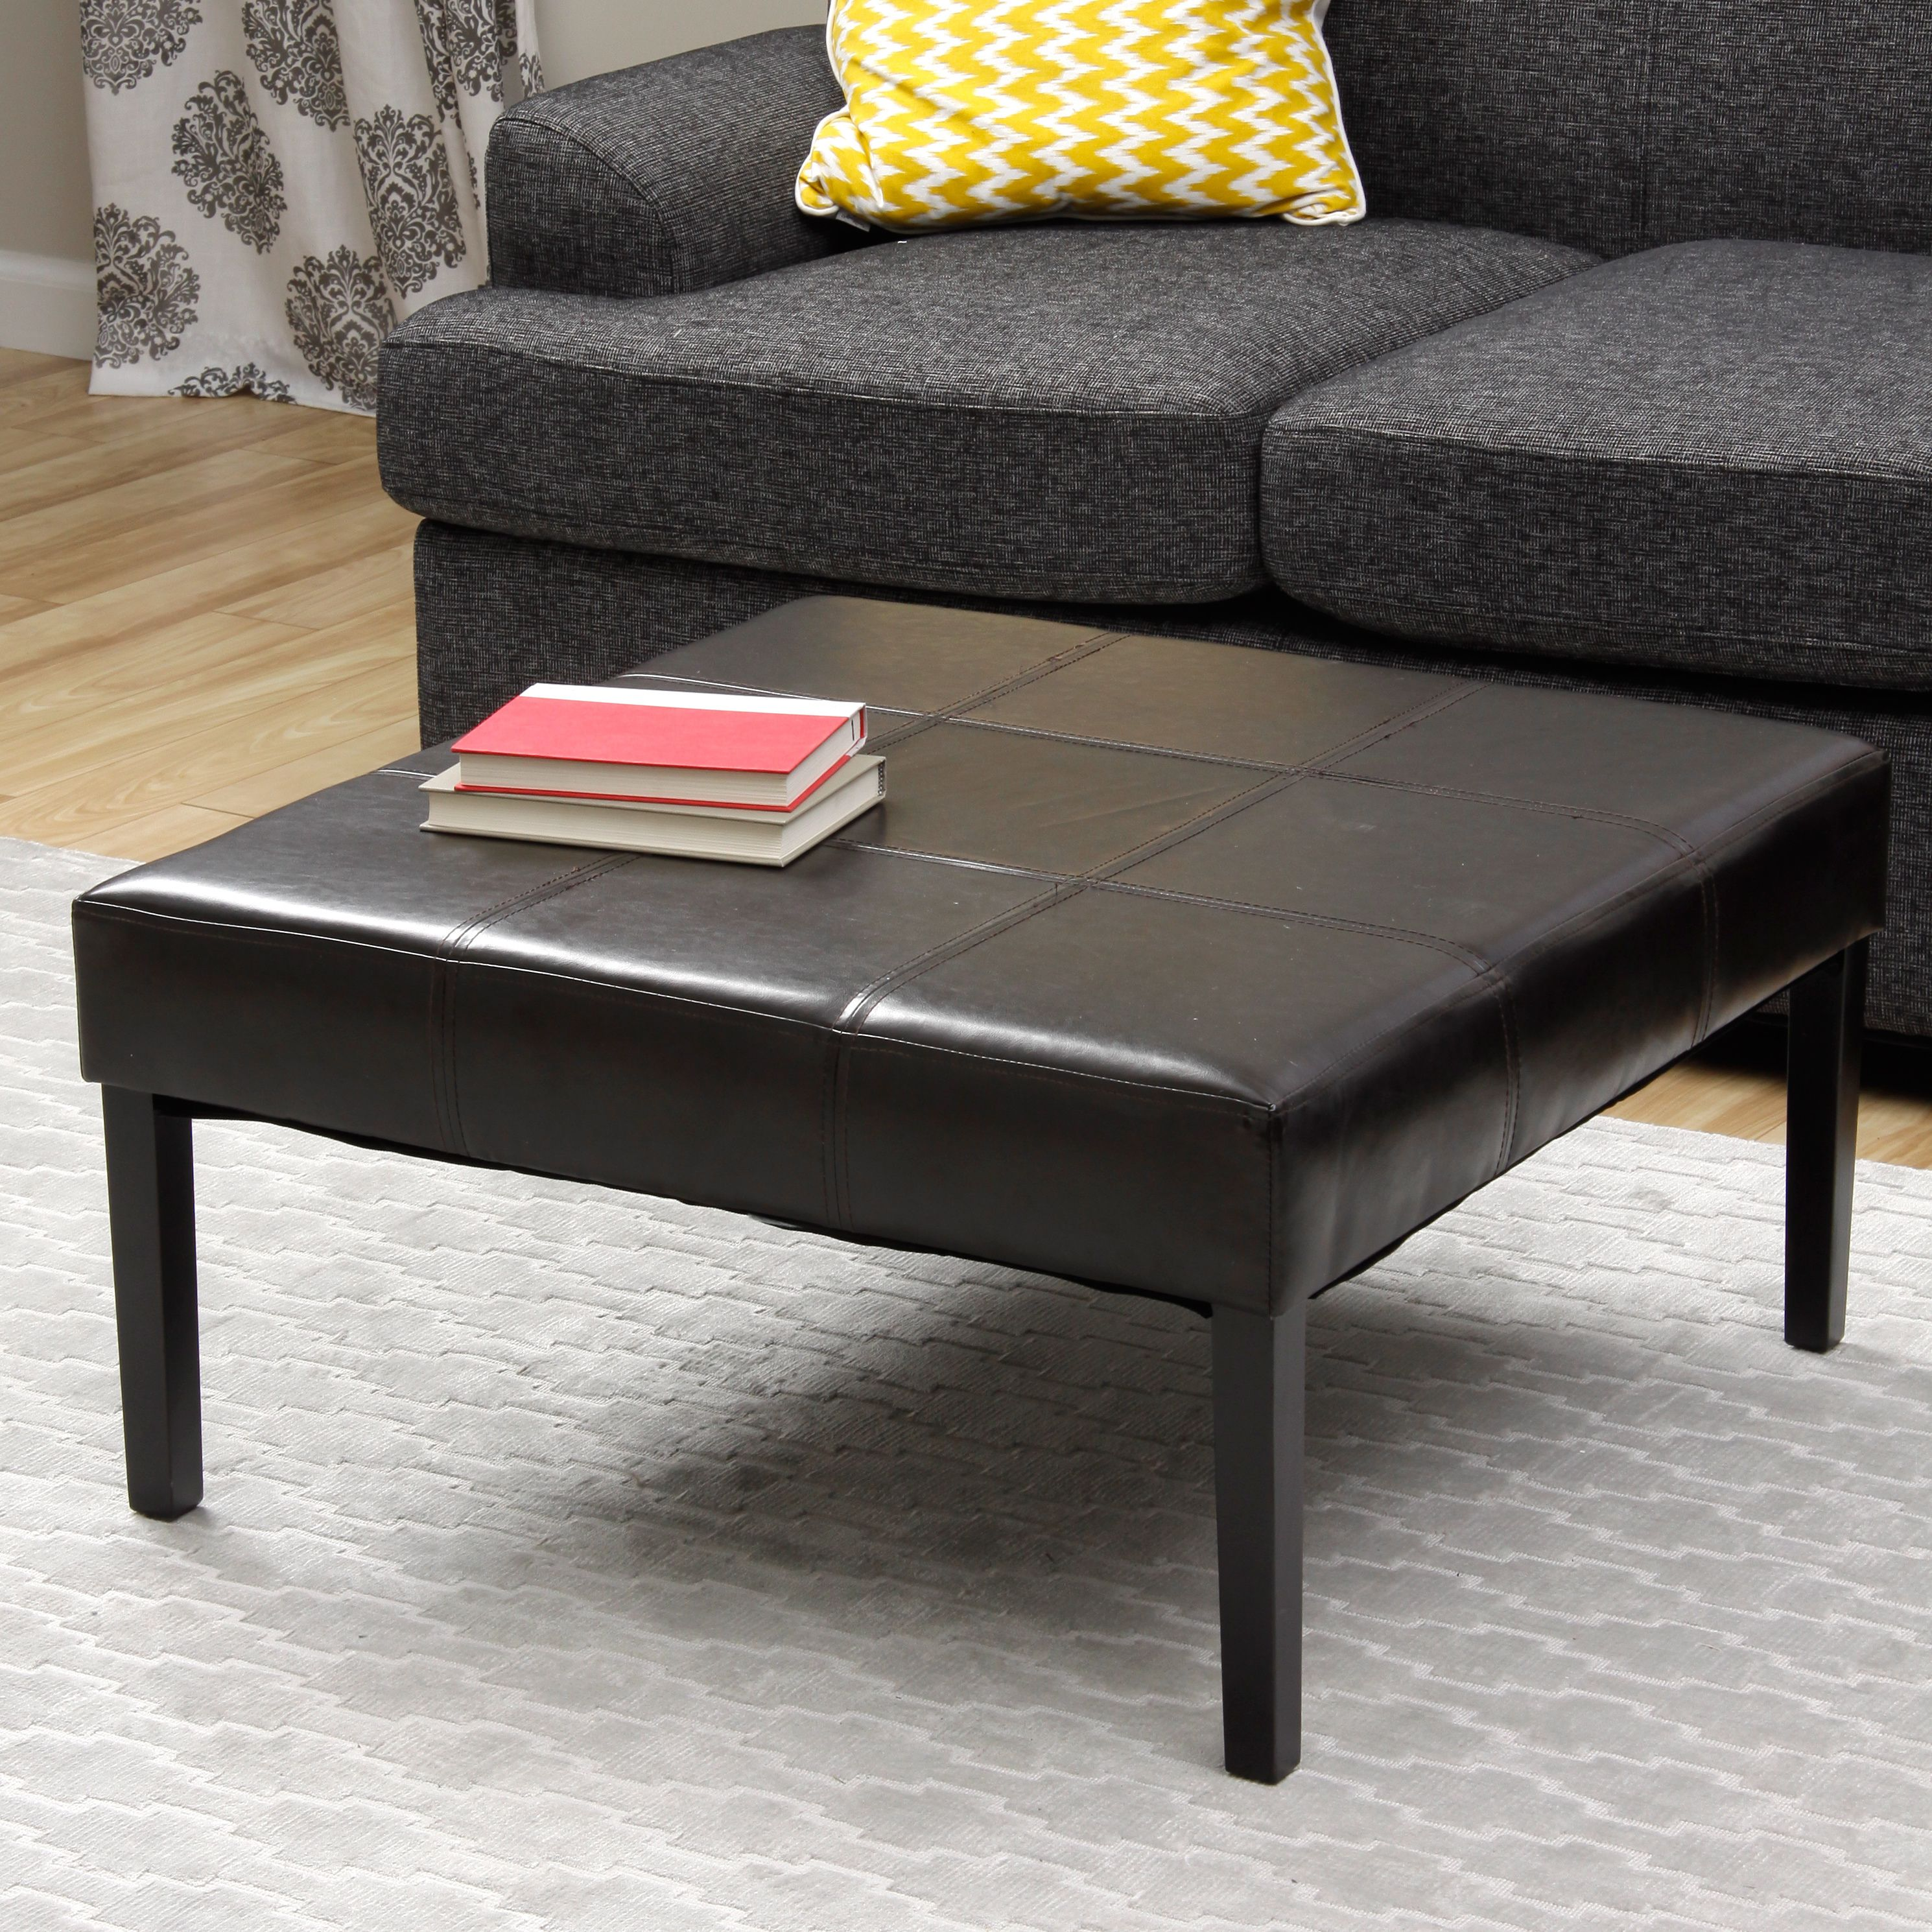 square faux leather coffee table ottoman | coffee table ottoman